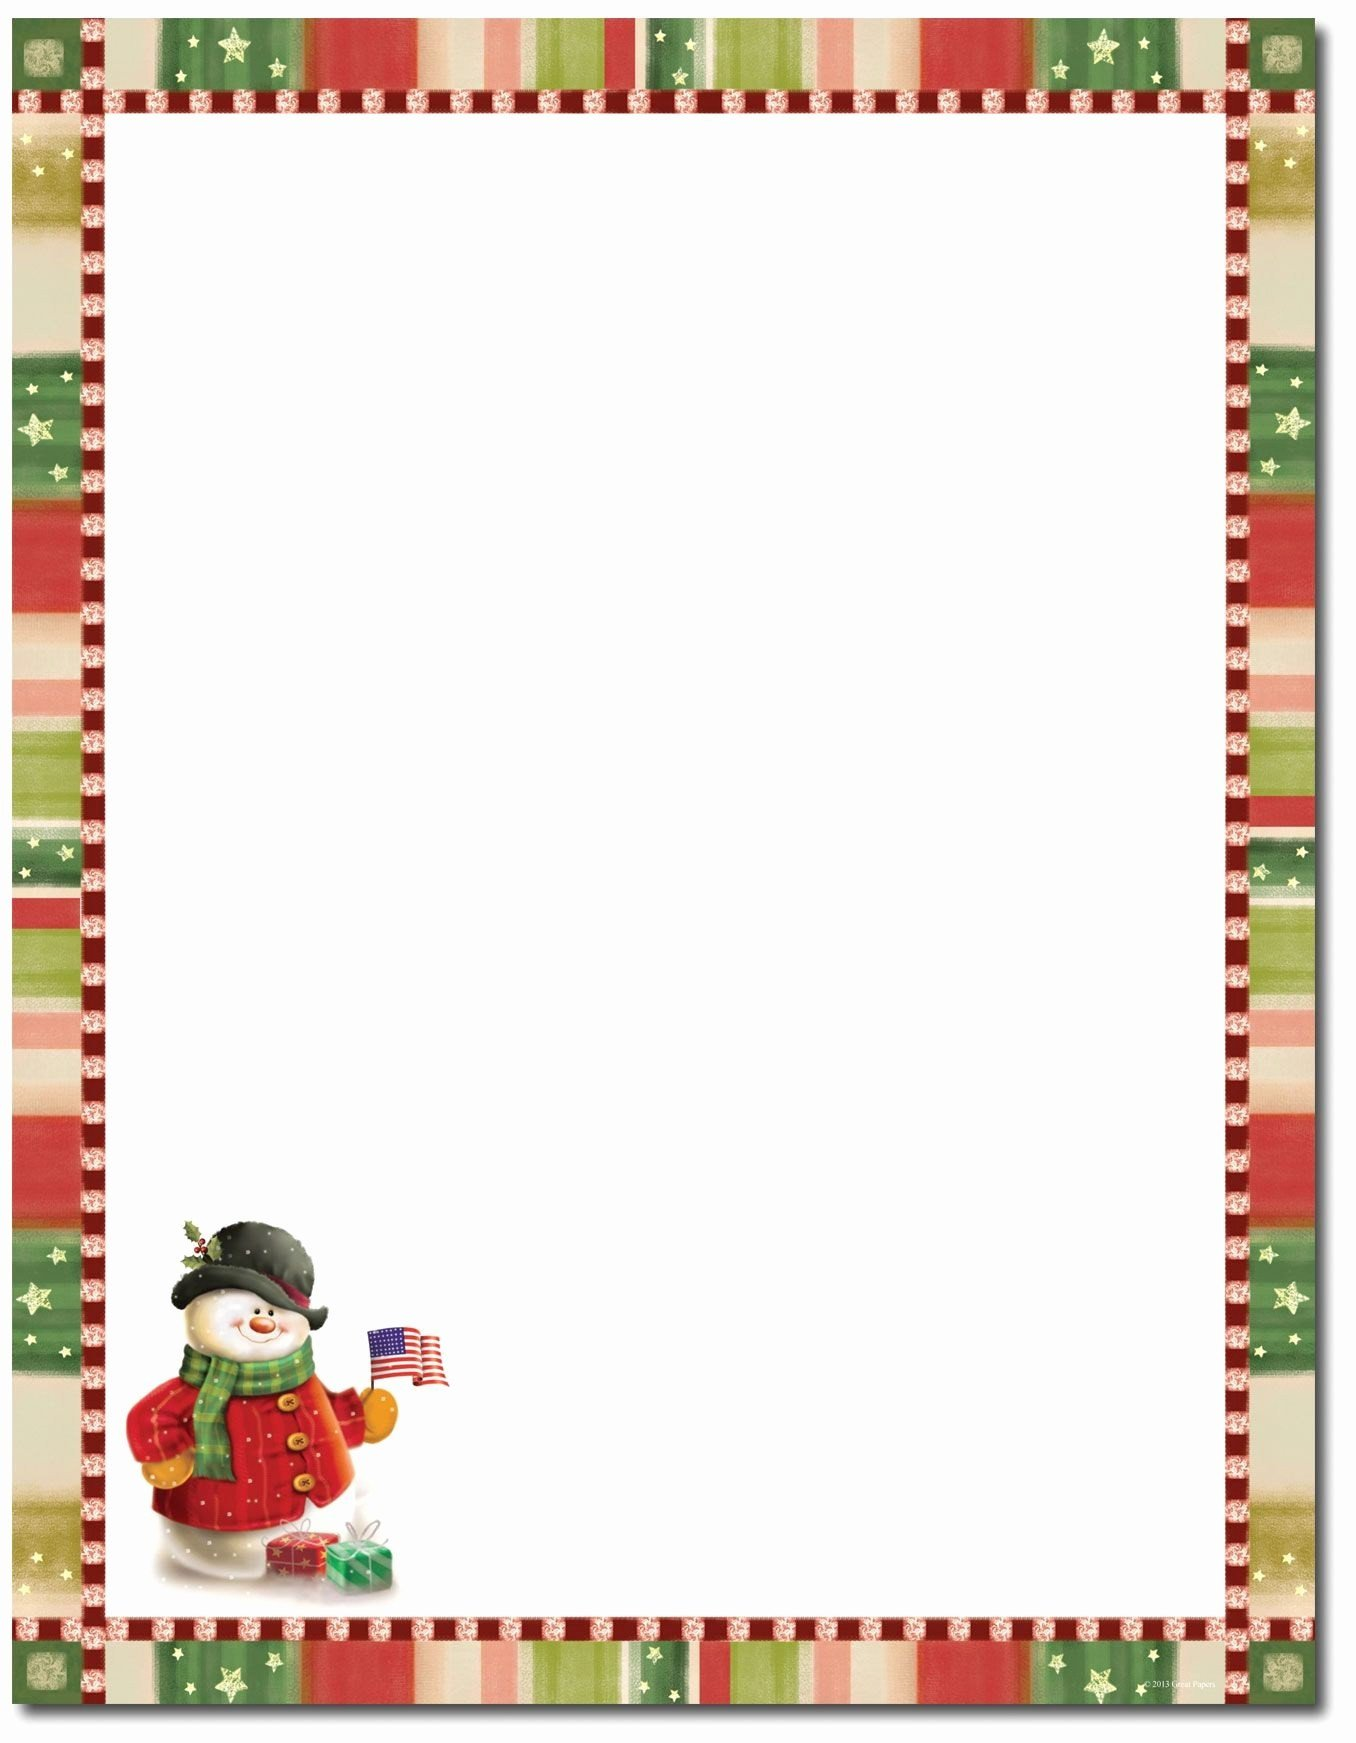 Free Christmas Stationery Templates Free Stationery Templates for Microsoft Word Pics – Floral